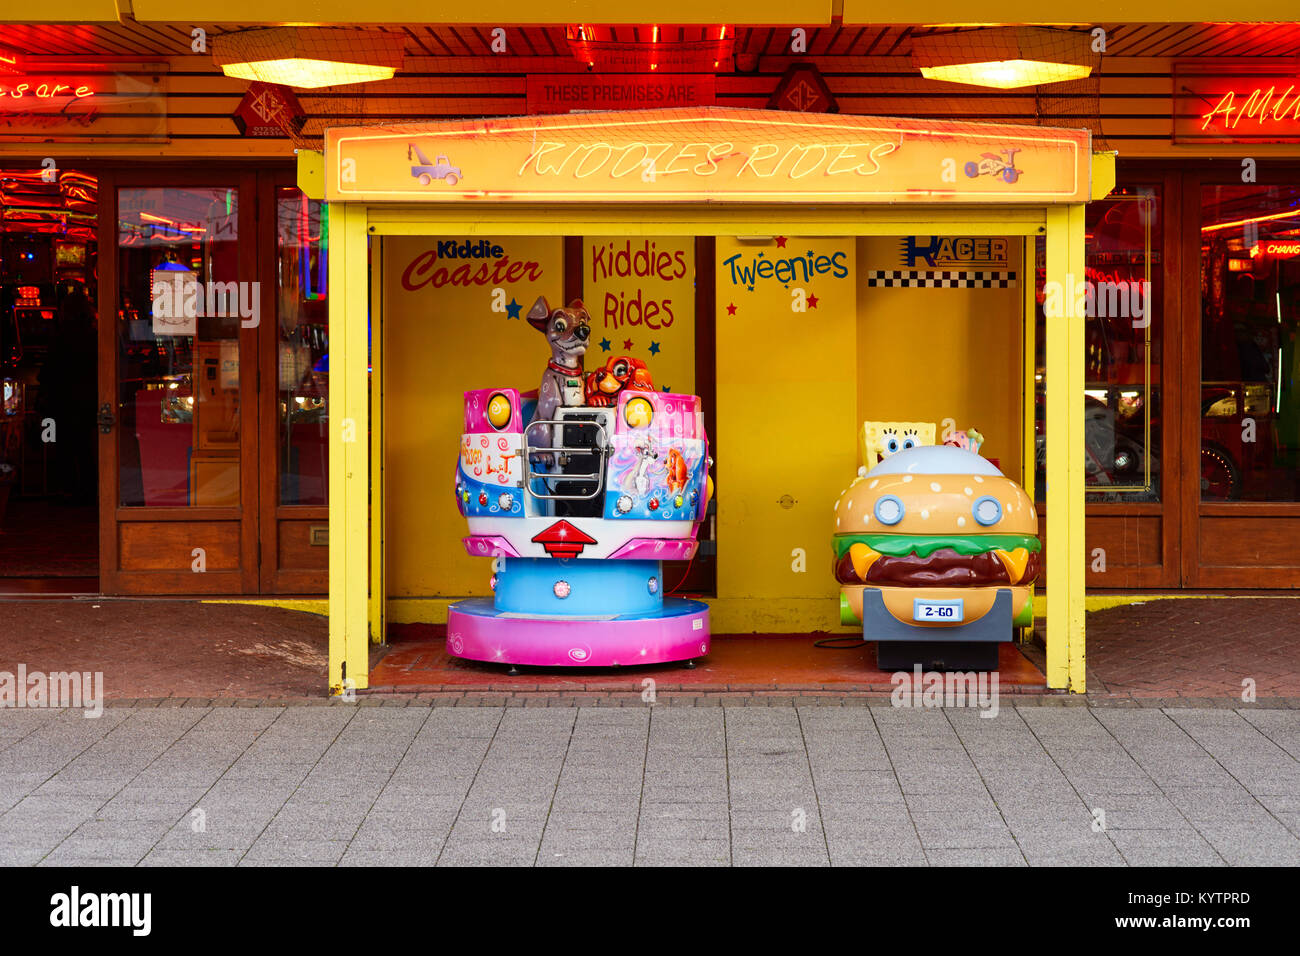 Kiddies rides outside an amusment arcade in Clacton, Essex - Stock Image